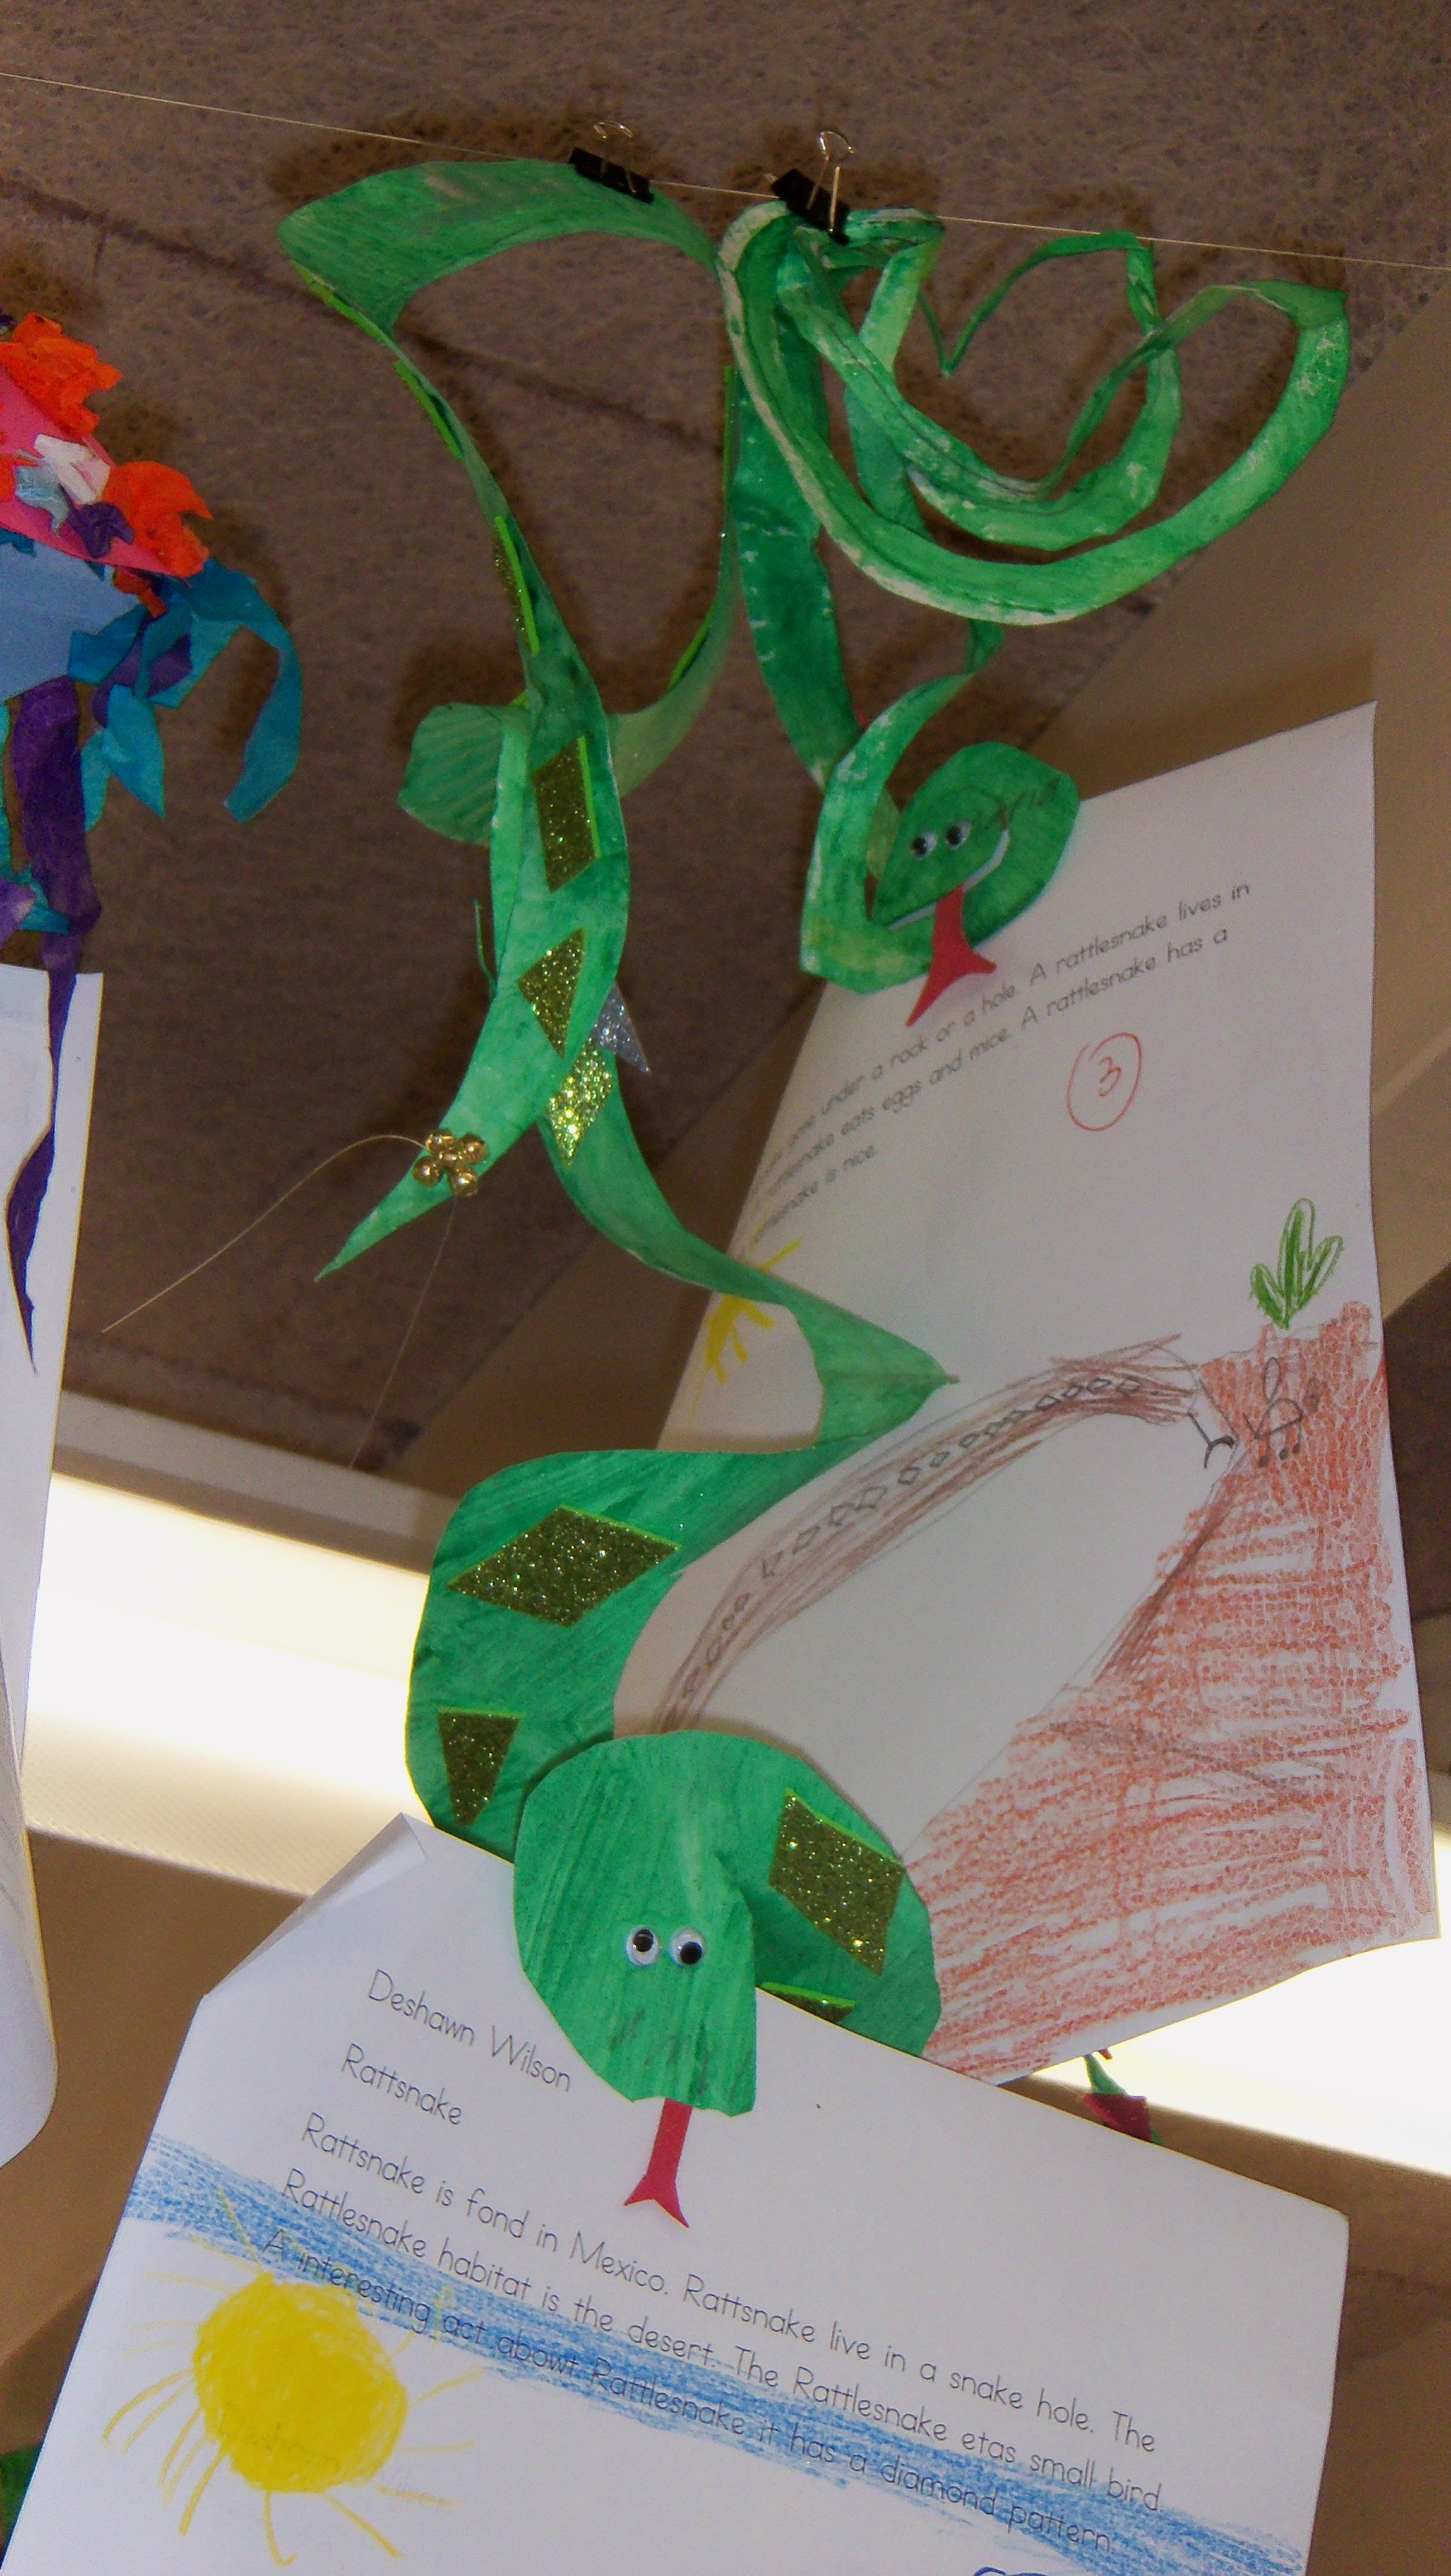 Rattlesnake Craft Have Kids Cut Out And Glue On A Paper